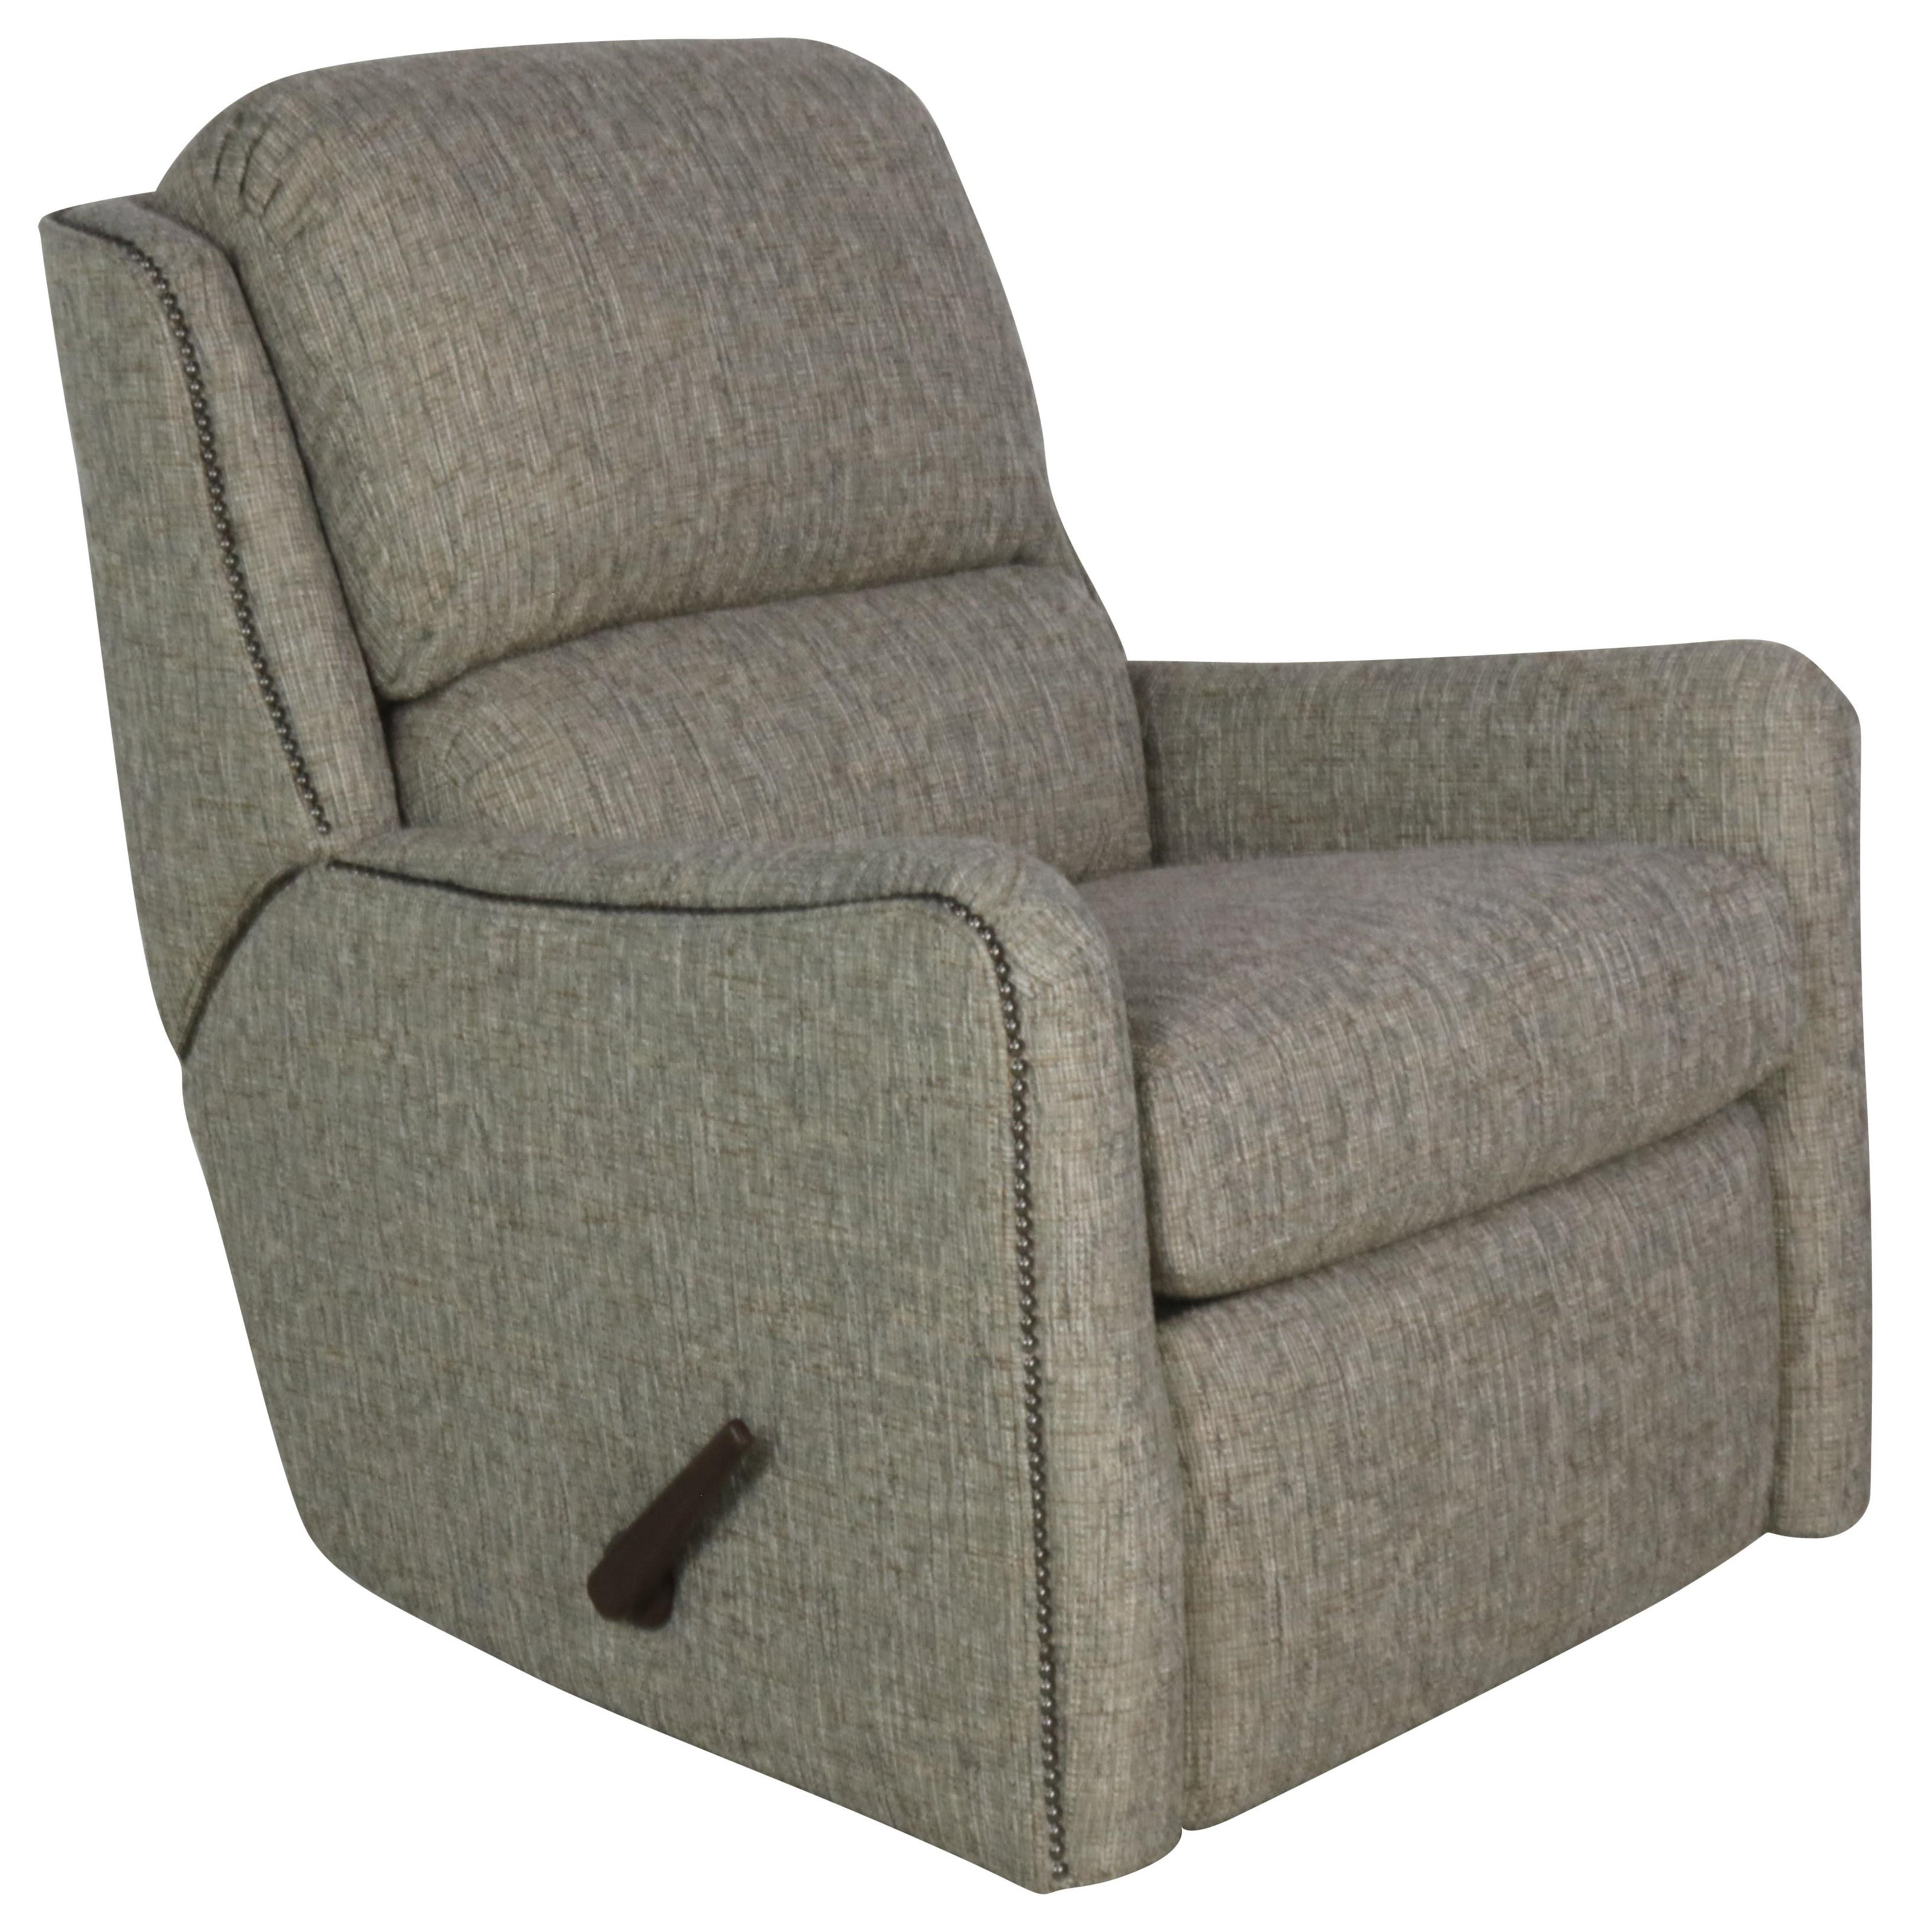 746 Swivel Glider Recliner by Smith Brothers at Sprintz Furniture